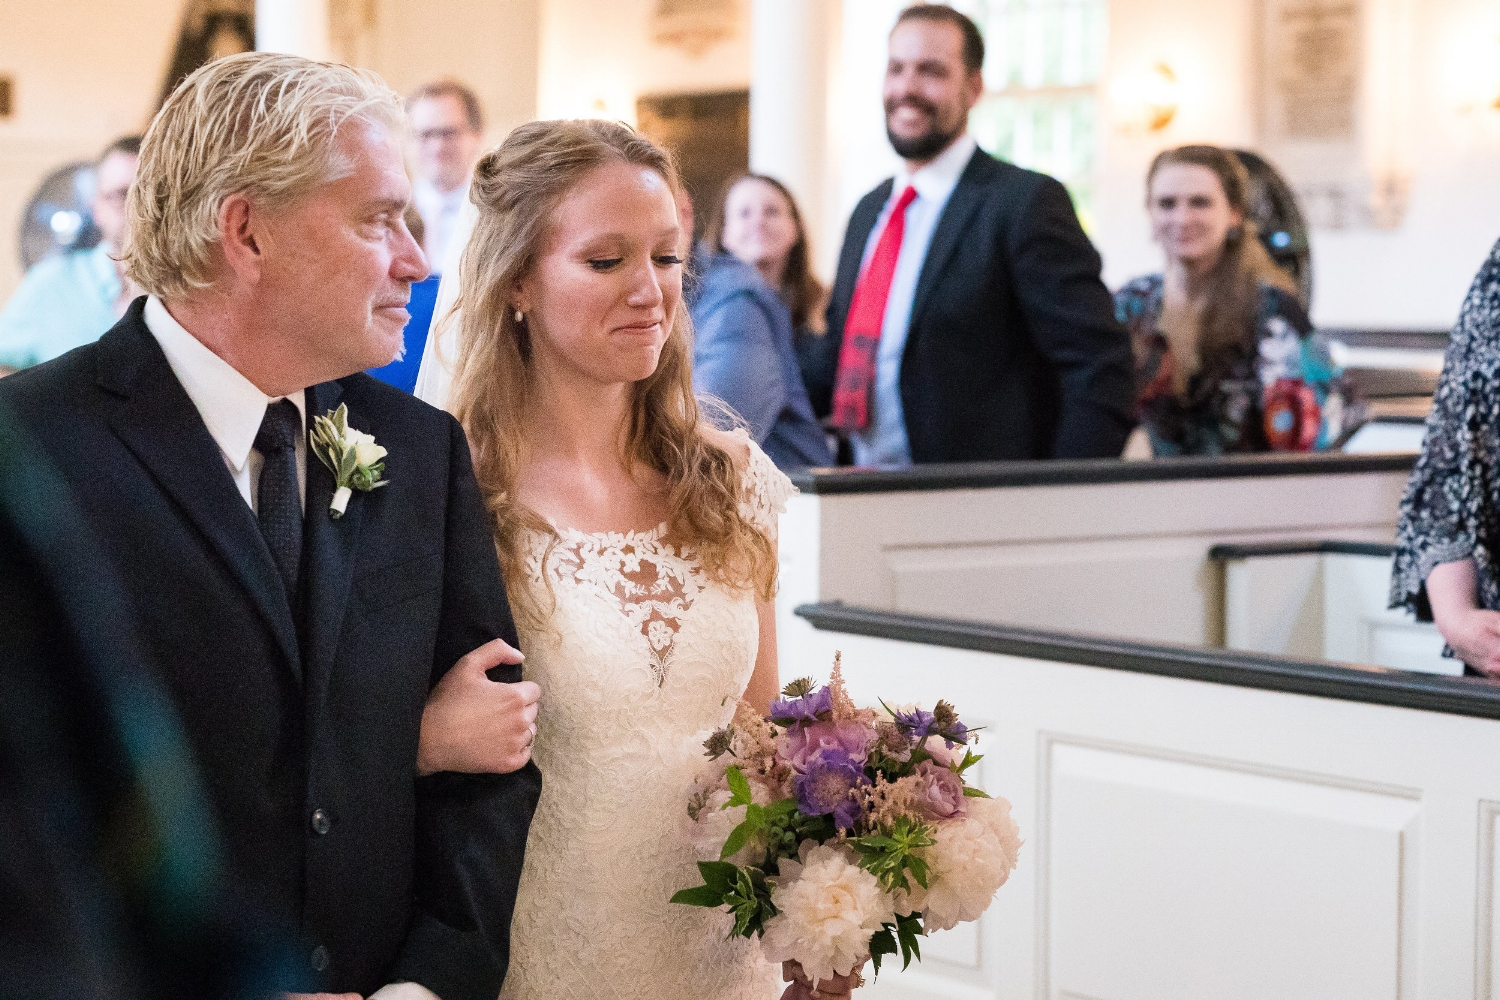 father-walks-bride-down-aisle